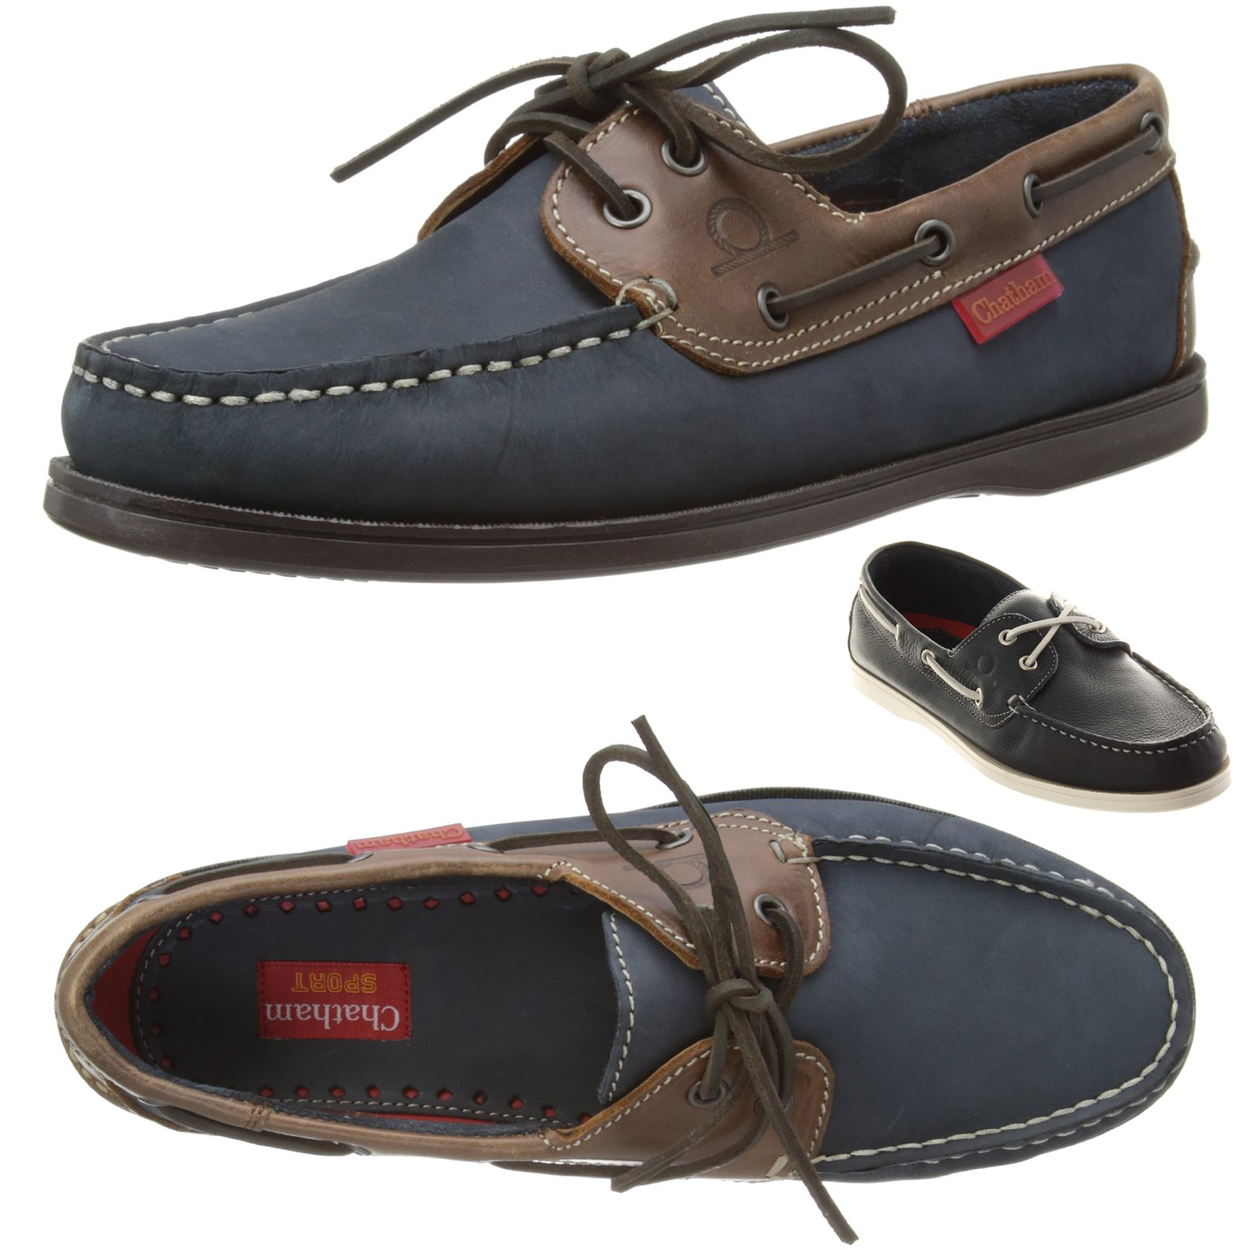 Commodore Deck Shoes - Made from